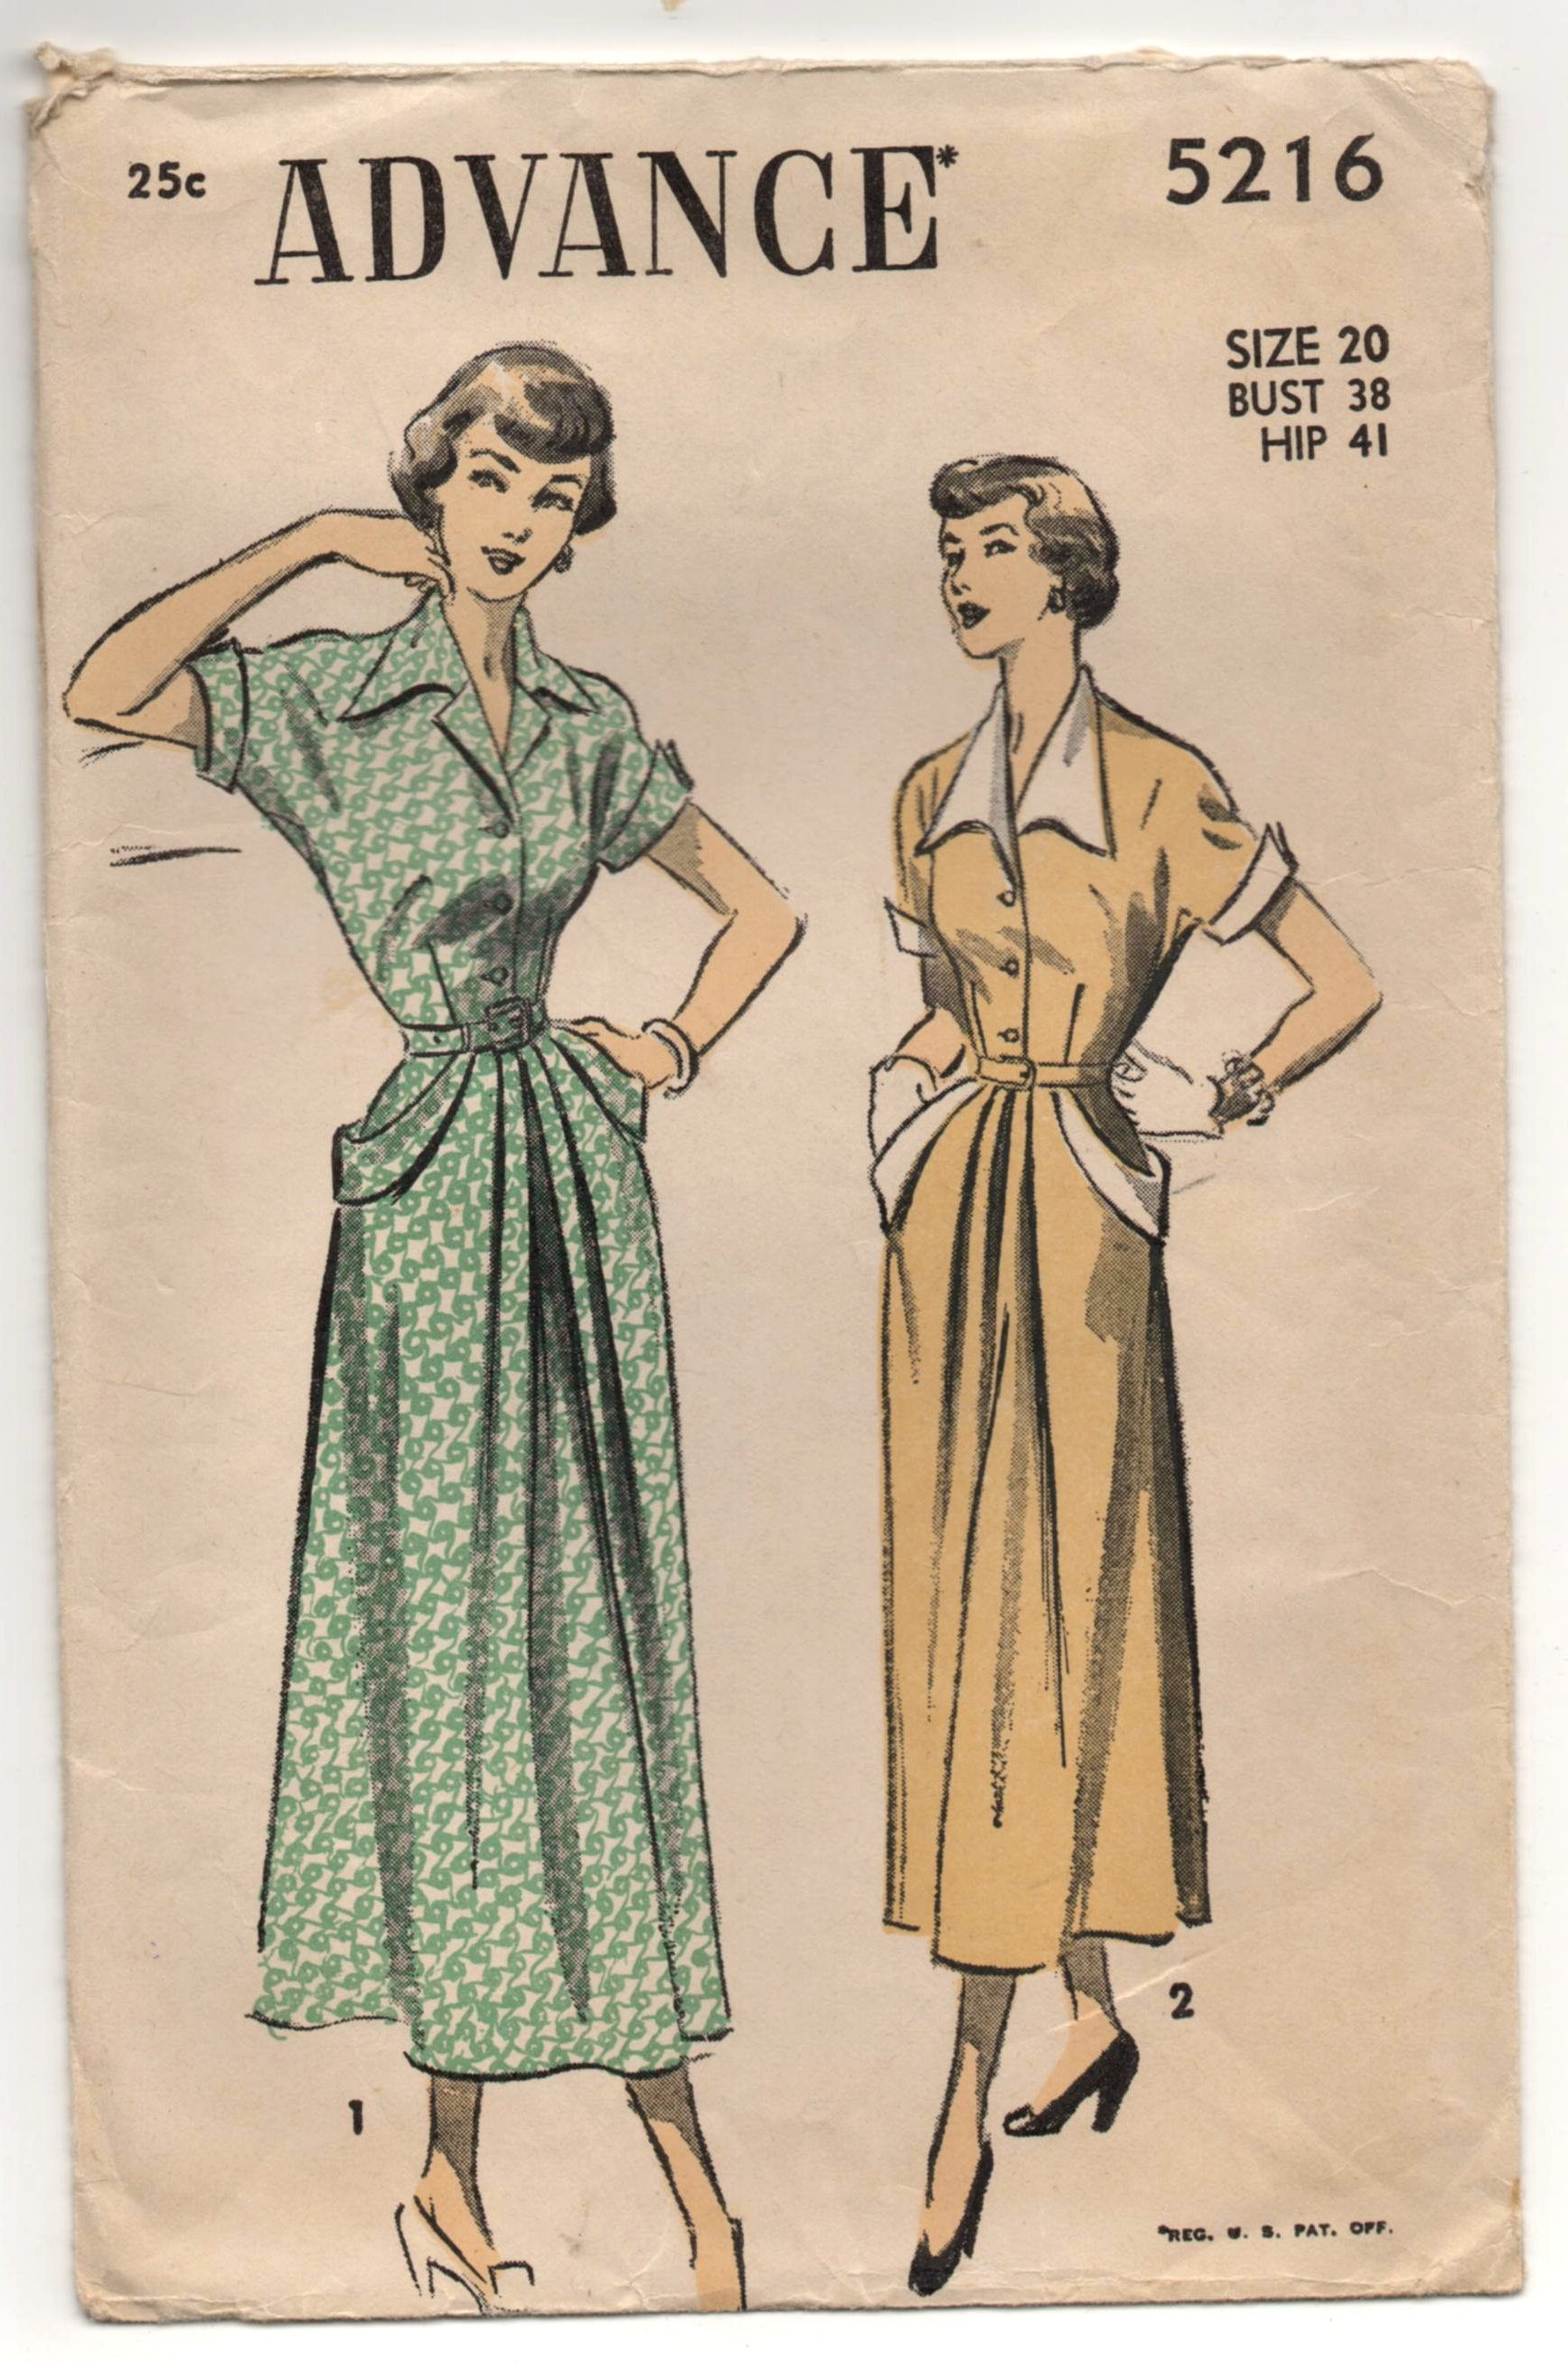 """1950's Advance One-Piece Dress with Short sleeves, Cuffs, and Pockets Pattern - Bust 38"""" - No. 5216 by backroomfinds on Etsy"""